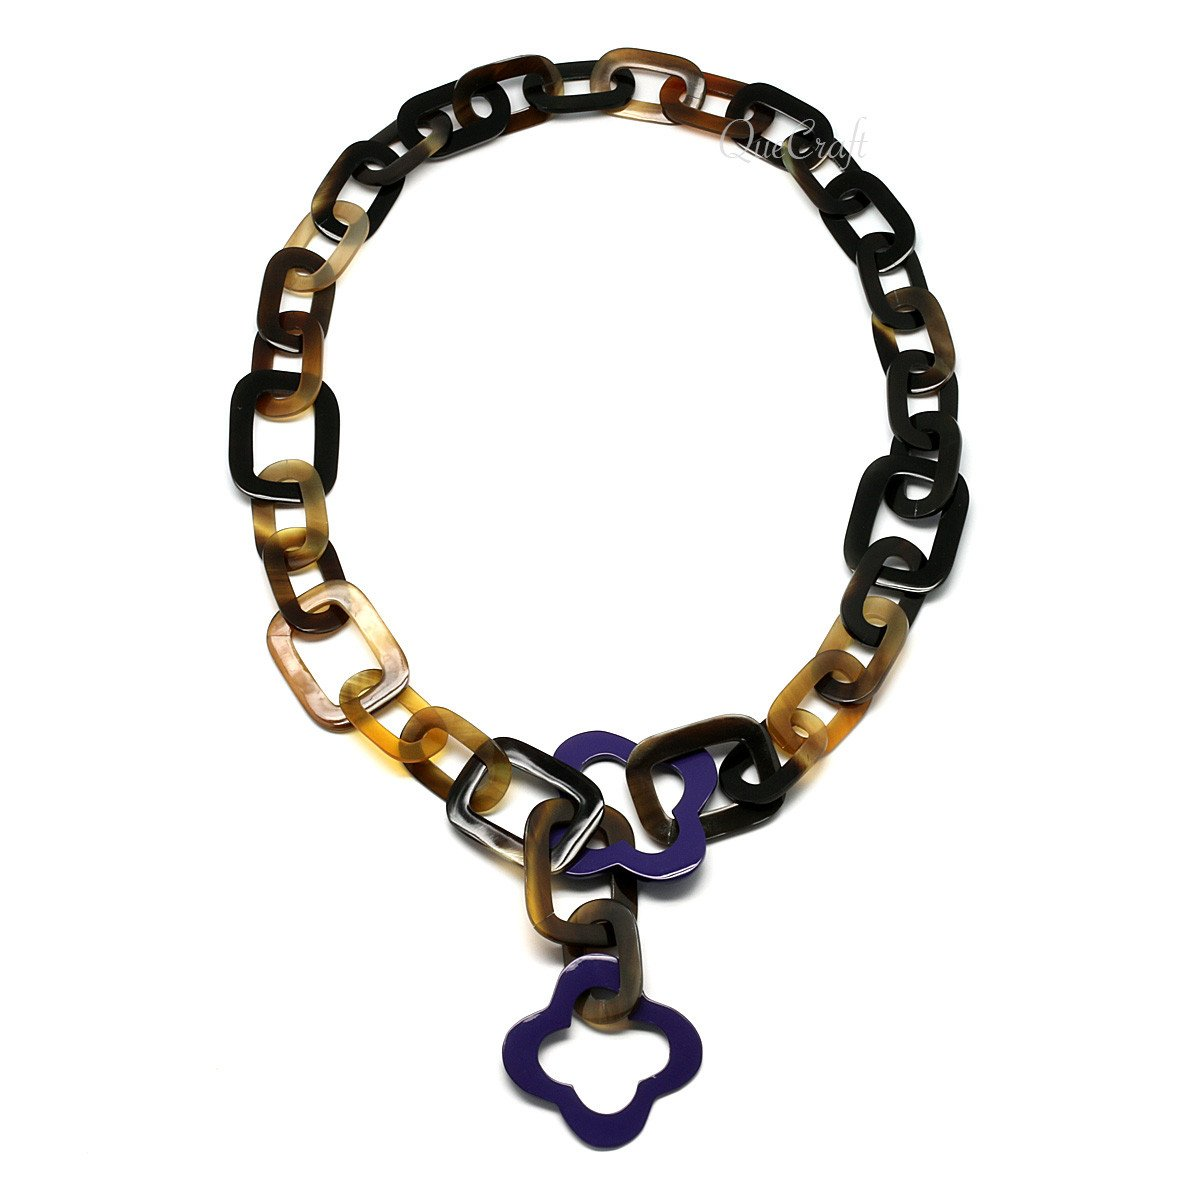 Horn & Lacquer Chain Necklace #4311 - HORN.JEWELRY by QueCraft